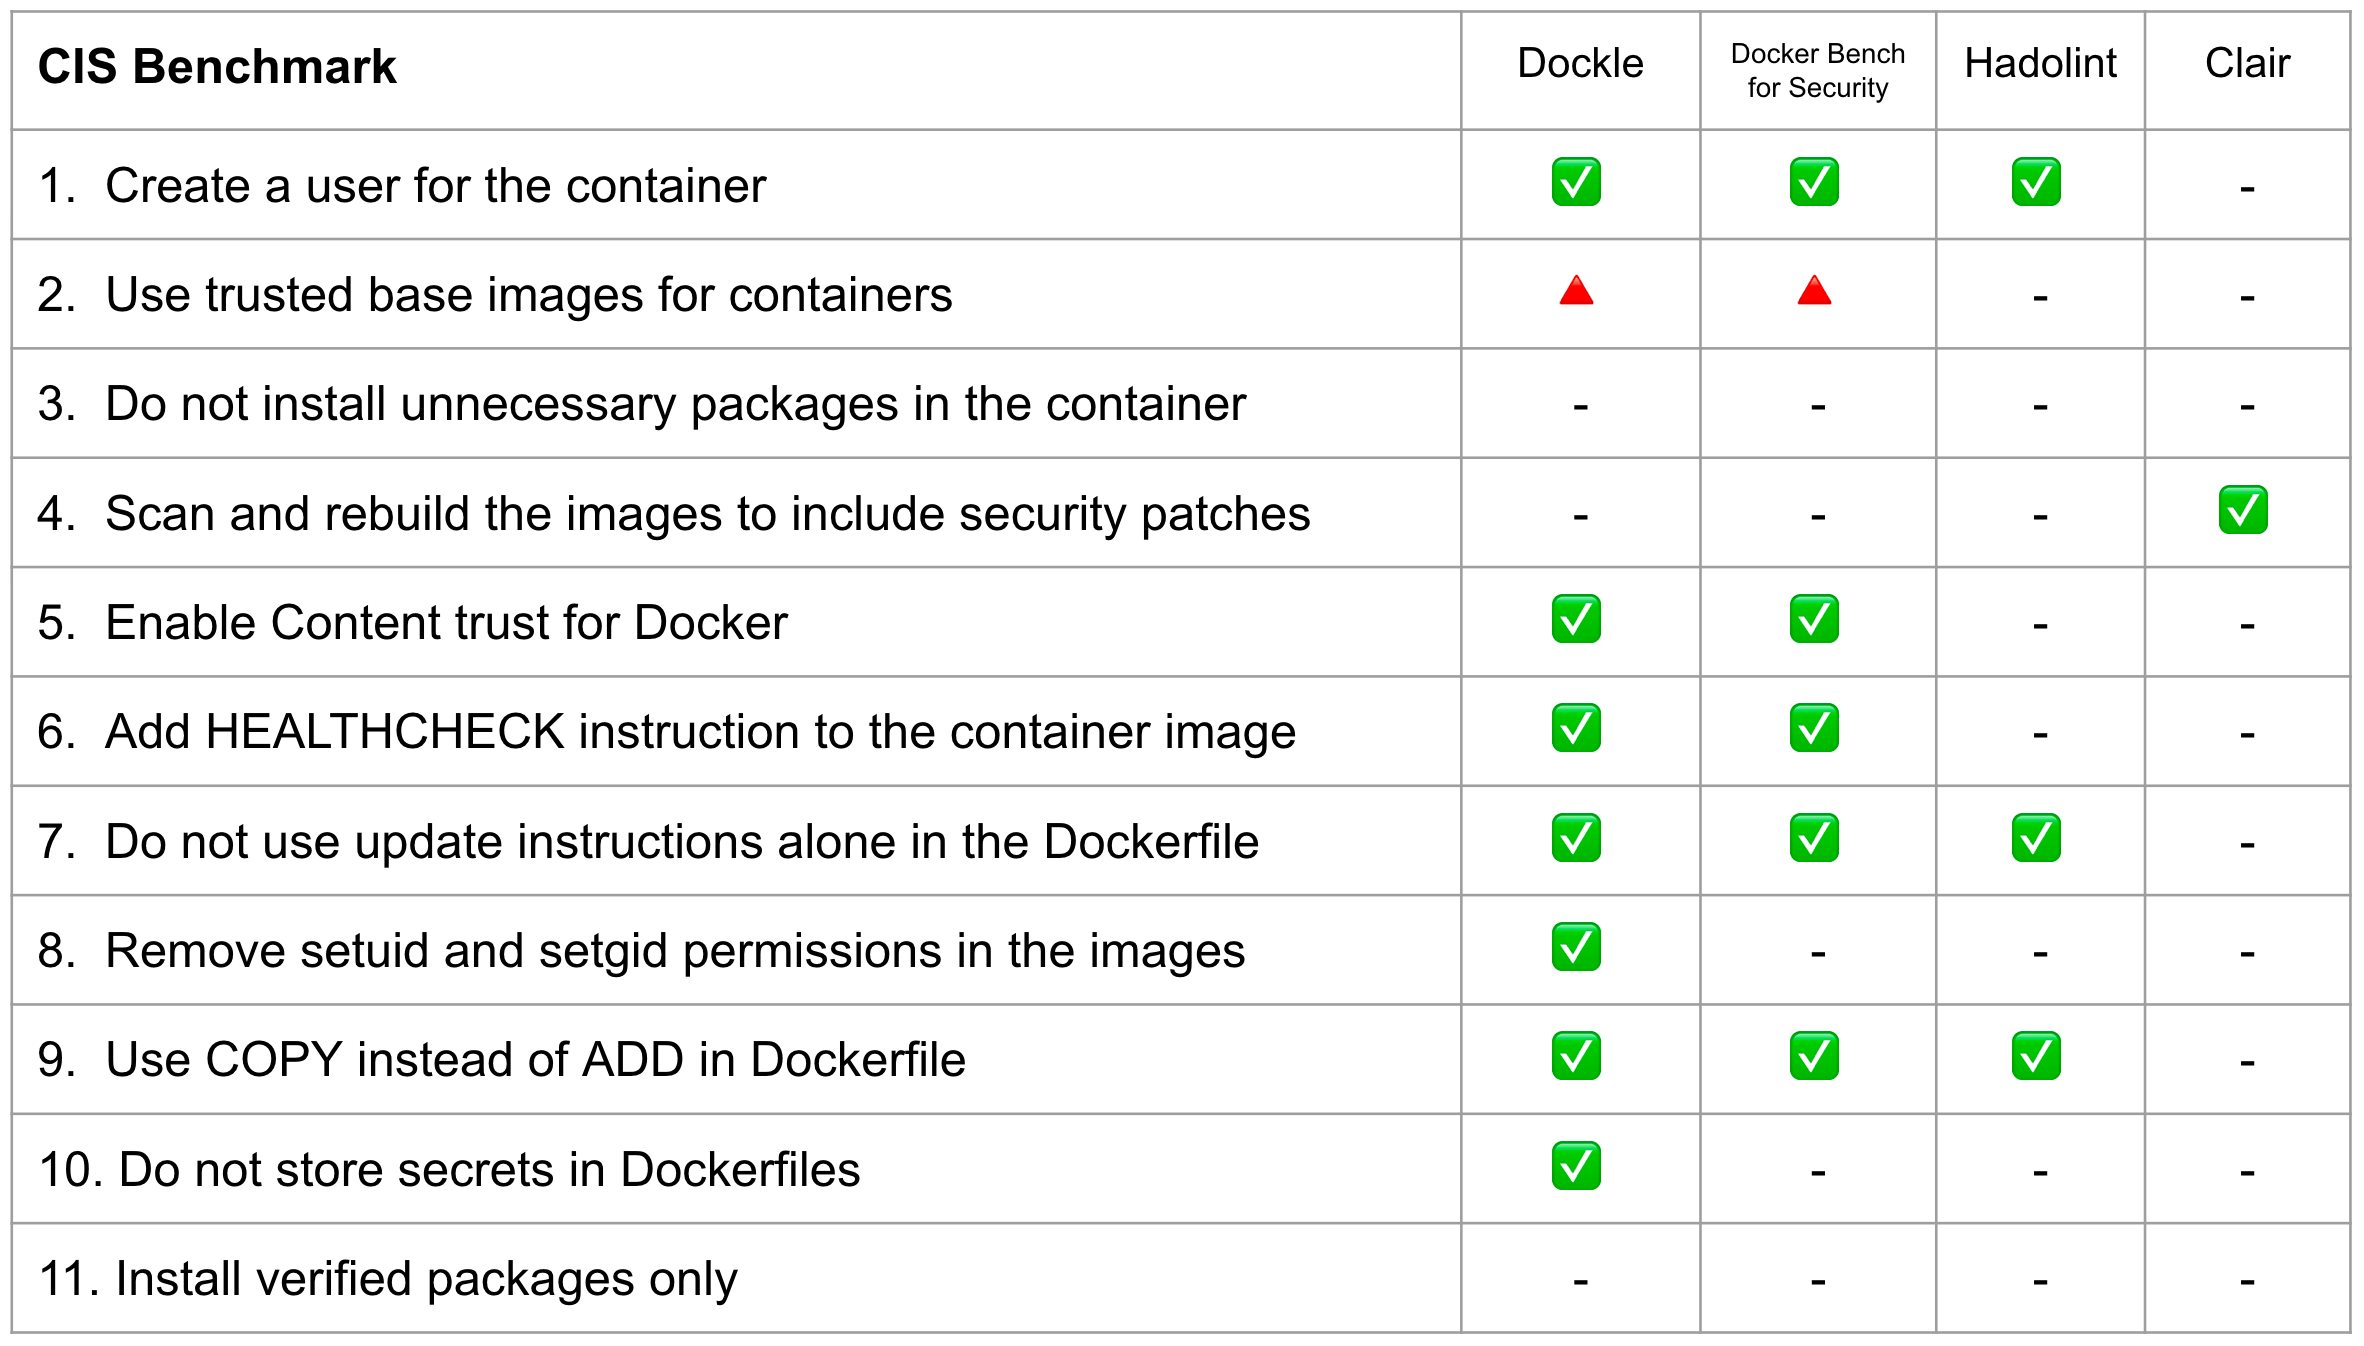 dockle: Container Image Linter for Security